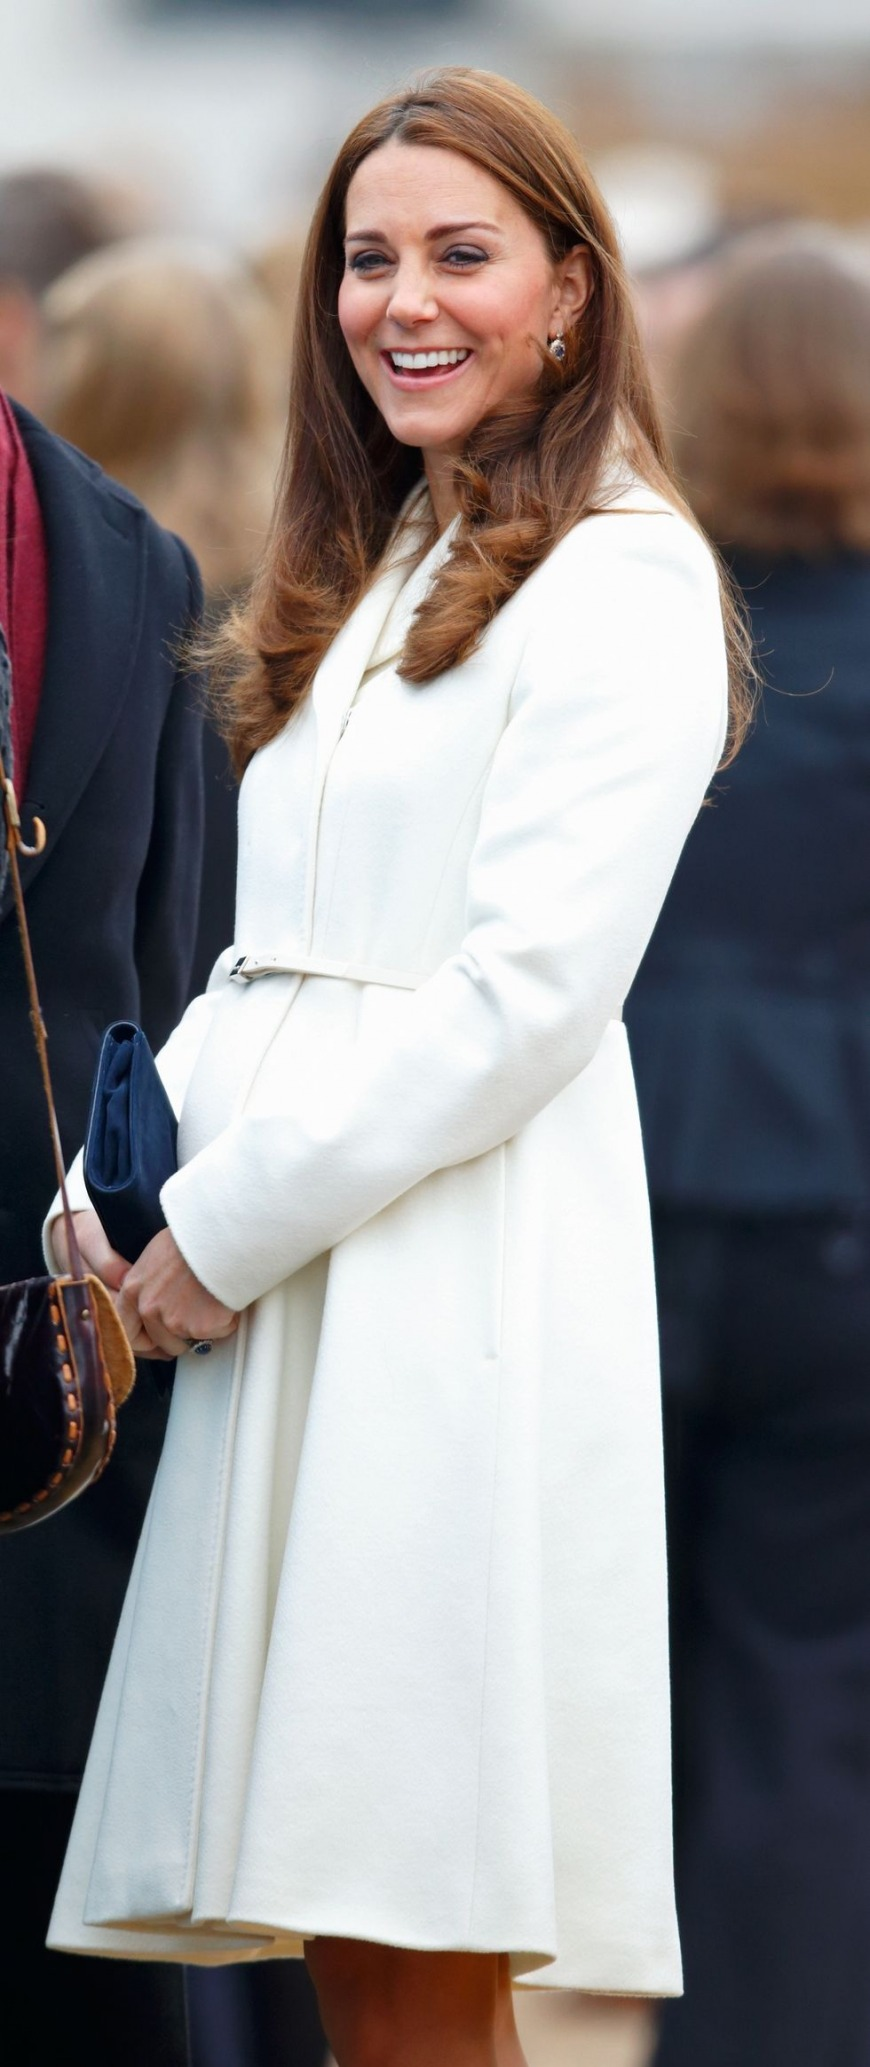 You can never go wrong with white. The Duchess paired this white coat with a blue bag for a visit to Portsmouth